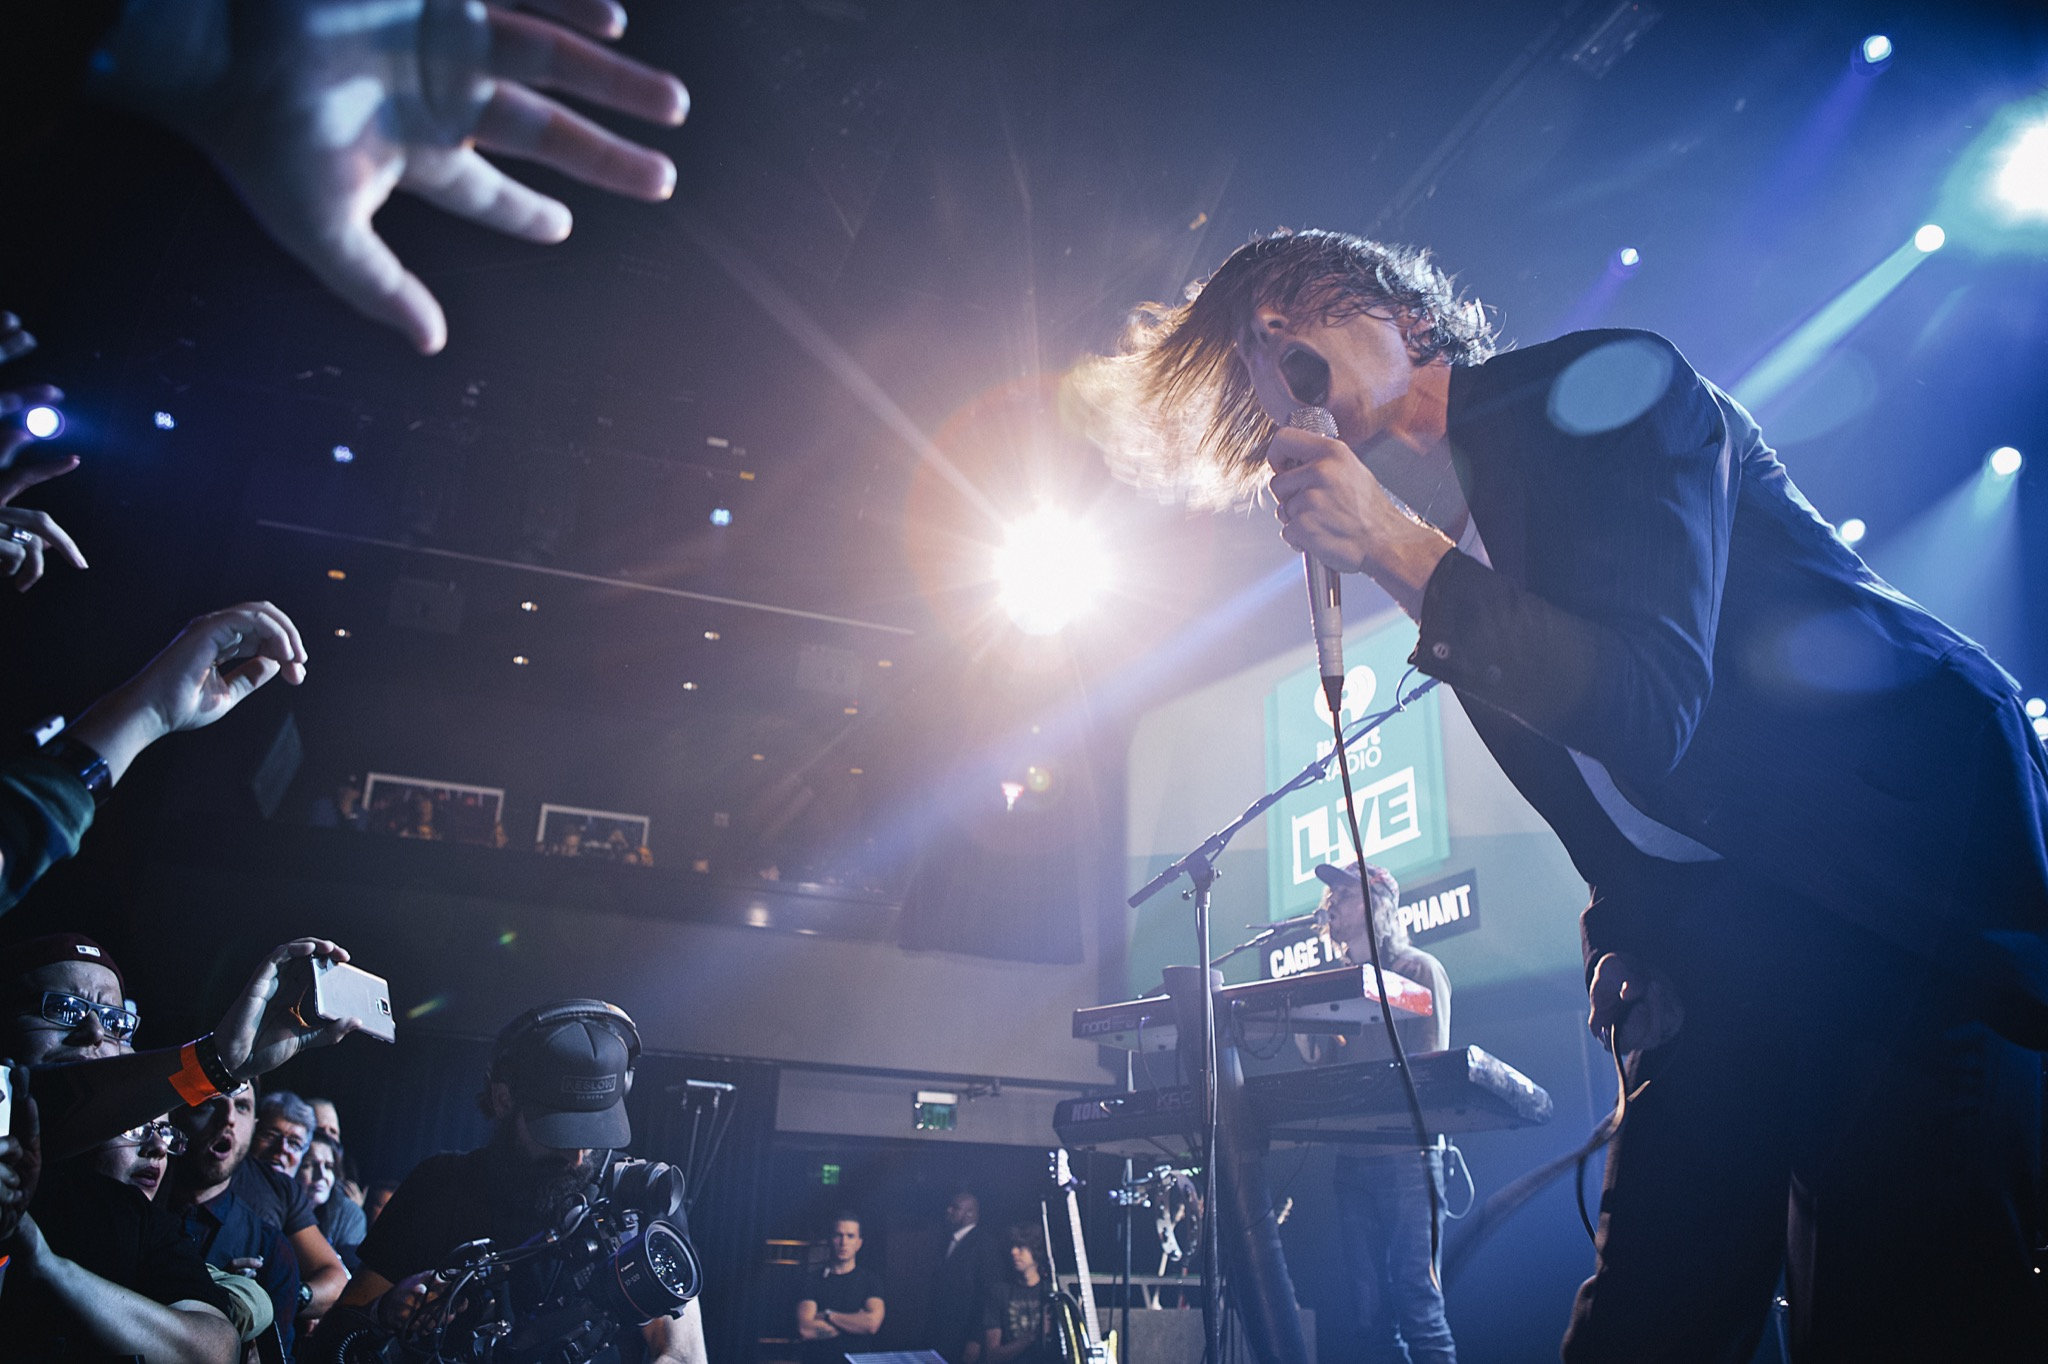 Cage The Elephant at iHeartRadio